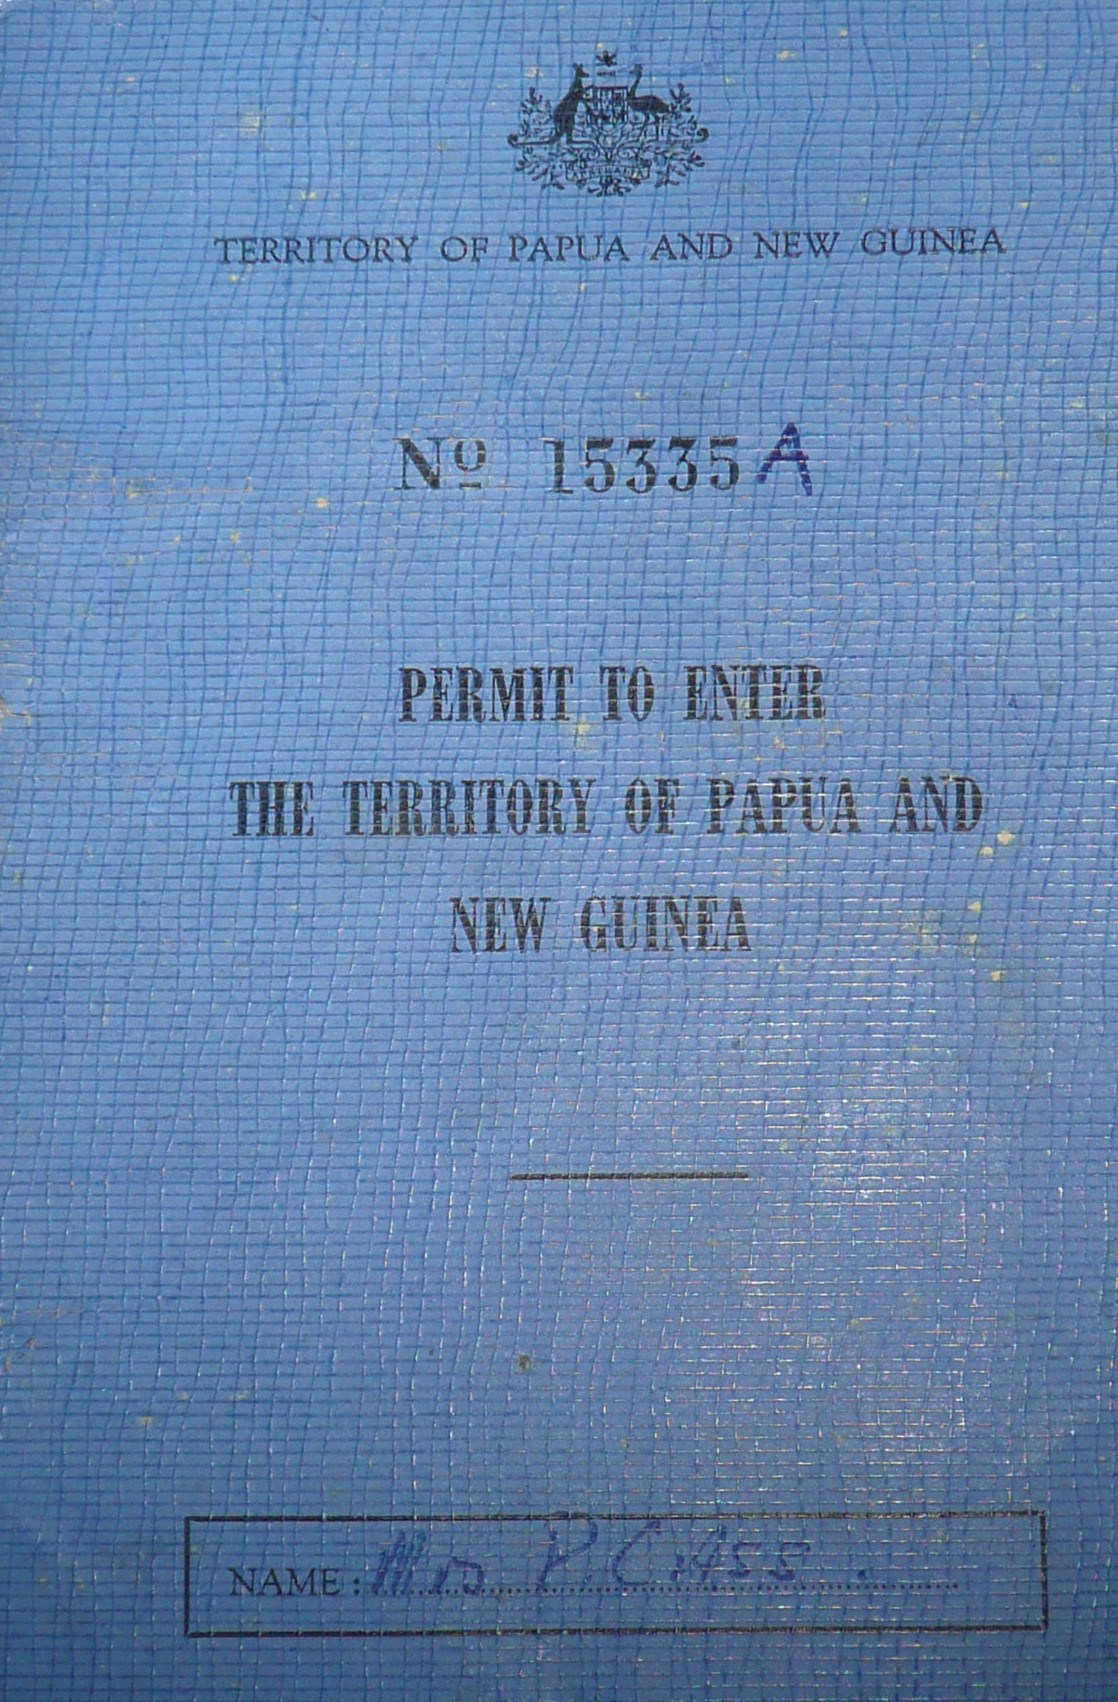 Items restricted by papua new guinea to be mailed to the country?